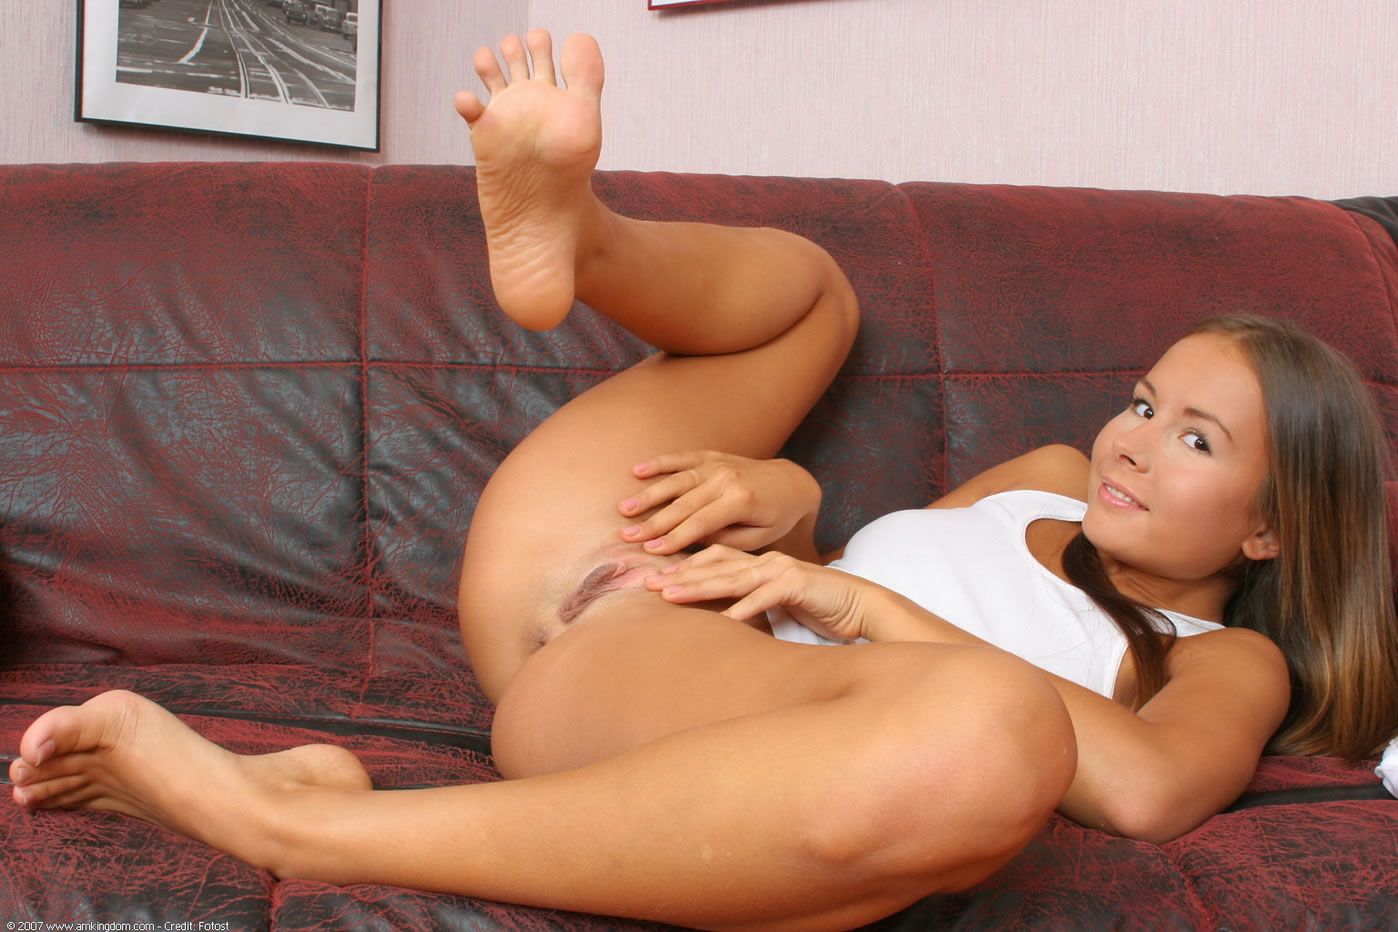 nude women showing feet